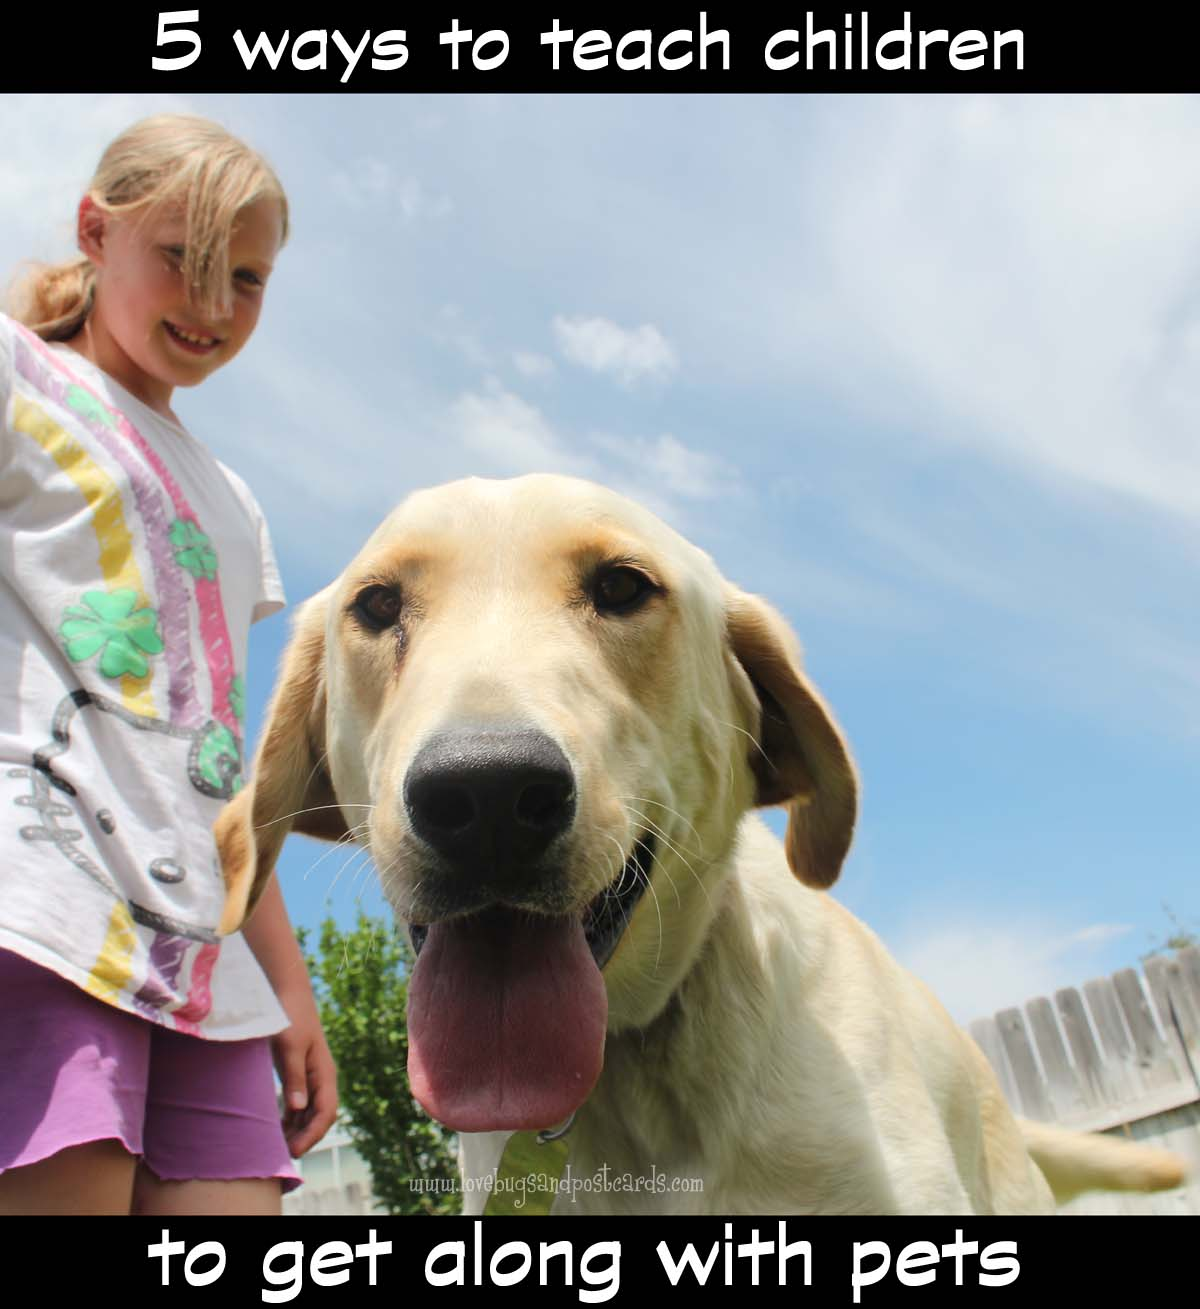 5 ways to teach children to get along with pets